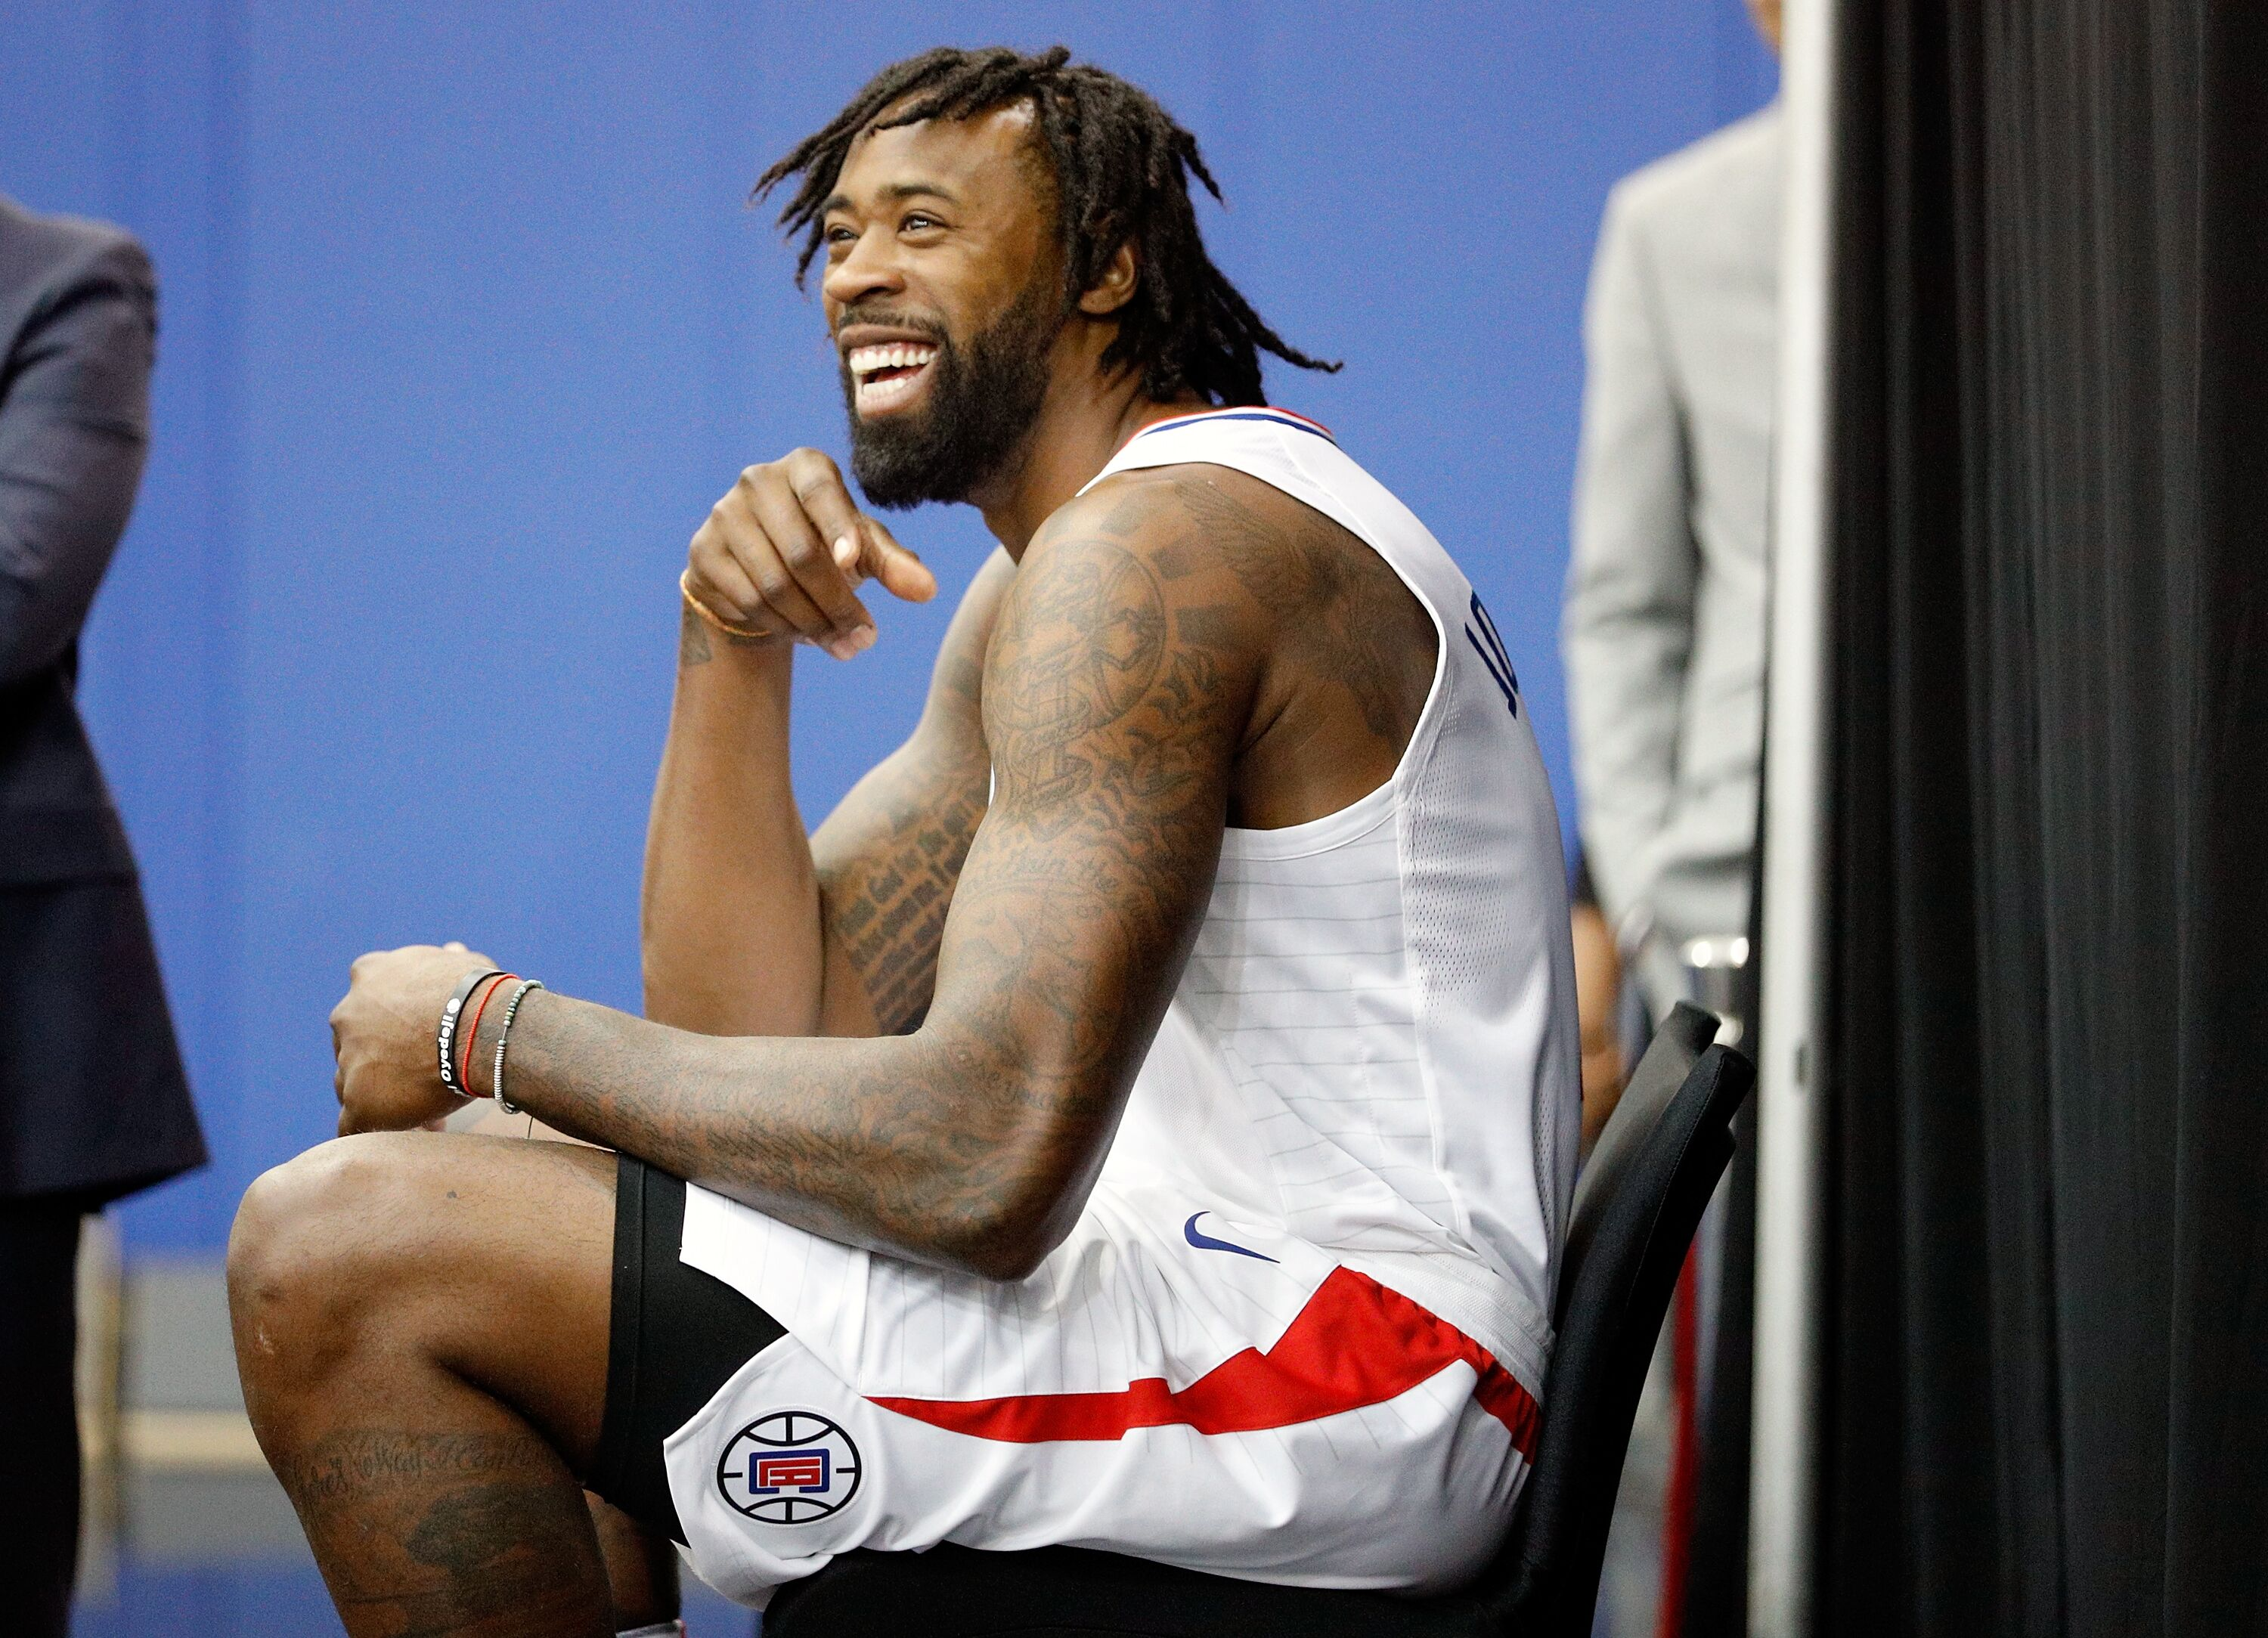 853796542-los-angeles-clippers-media-day.jpg